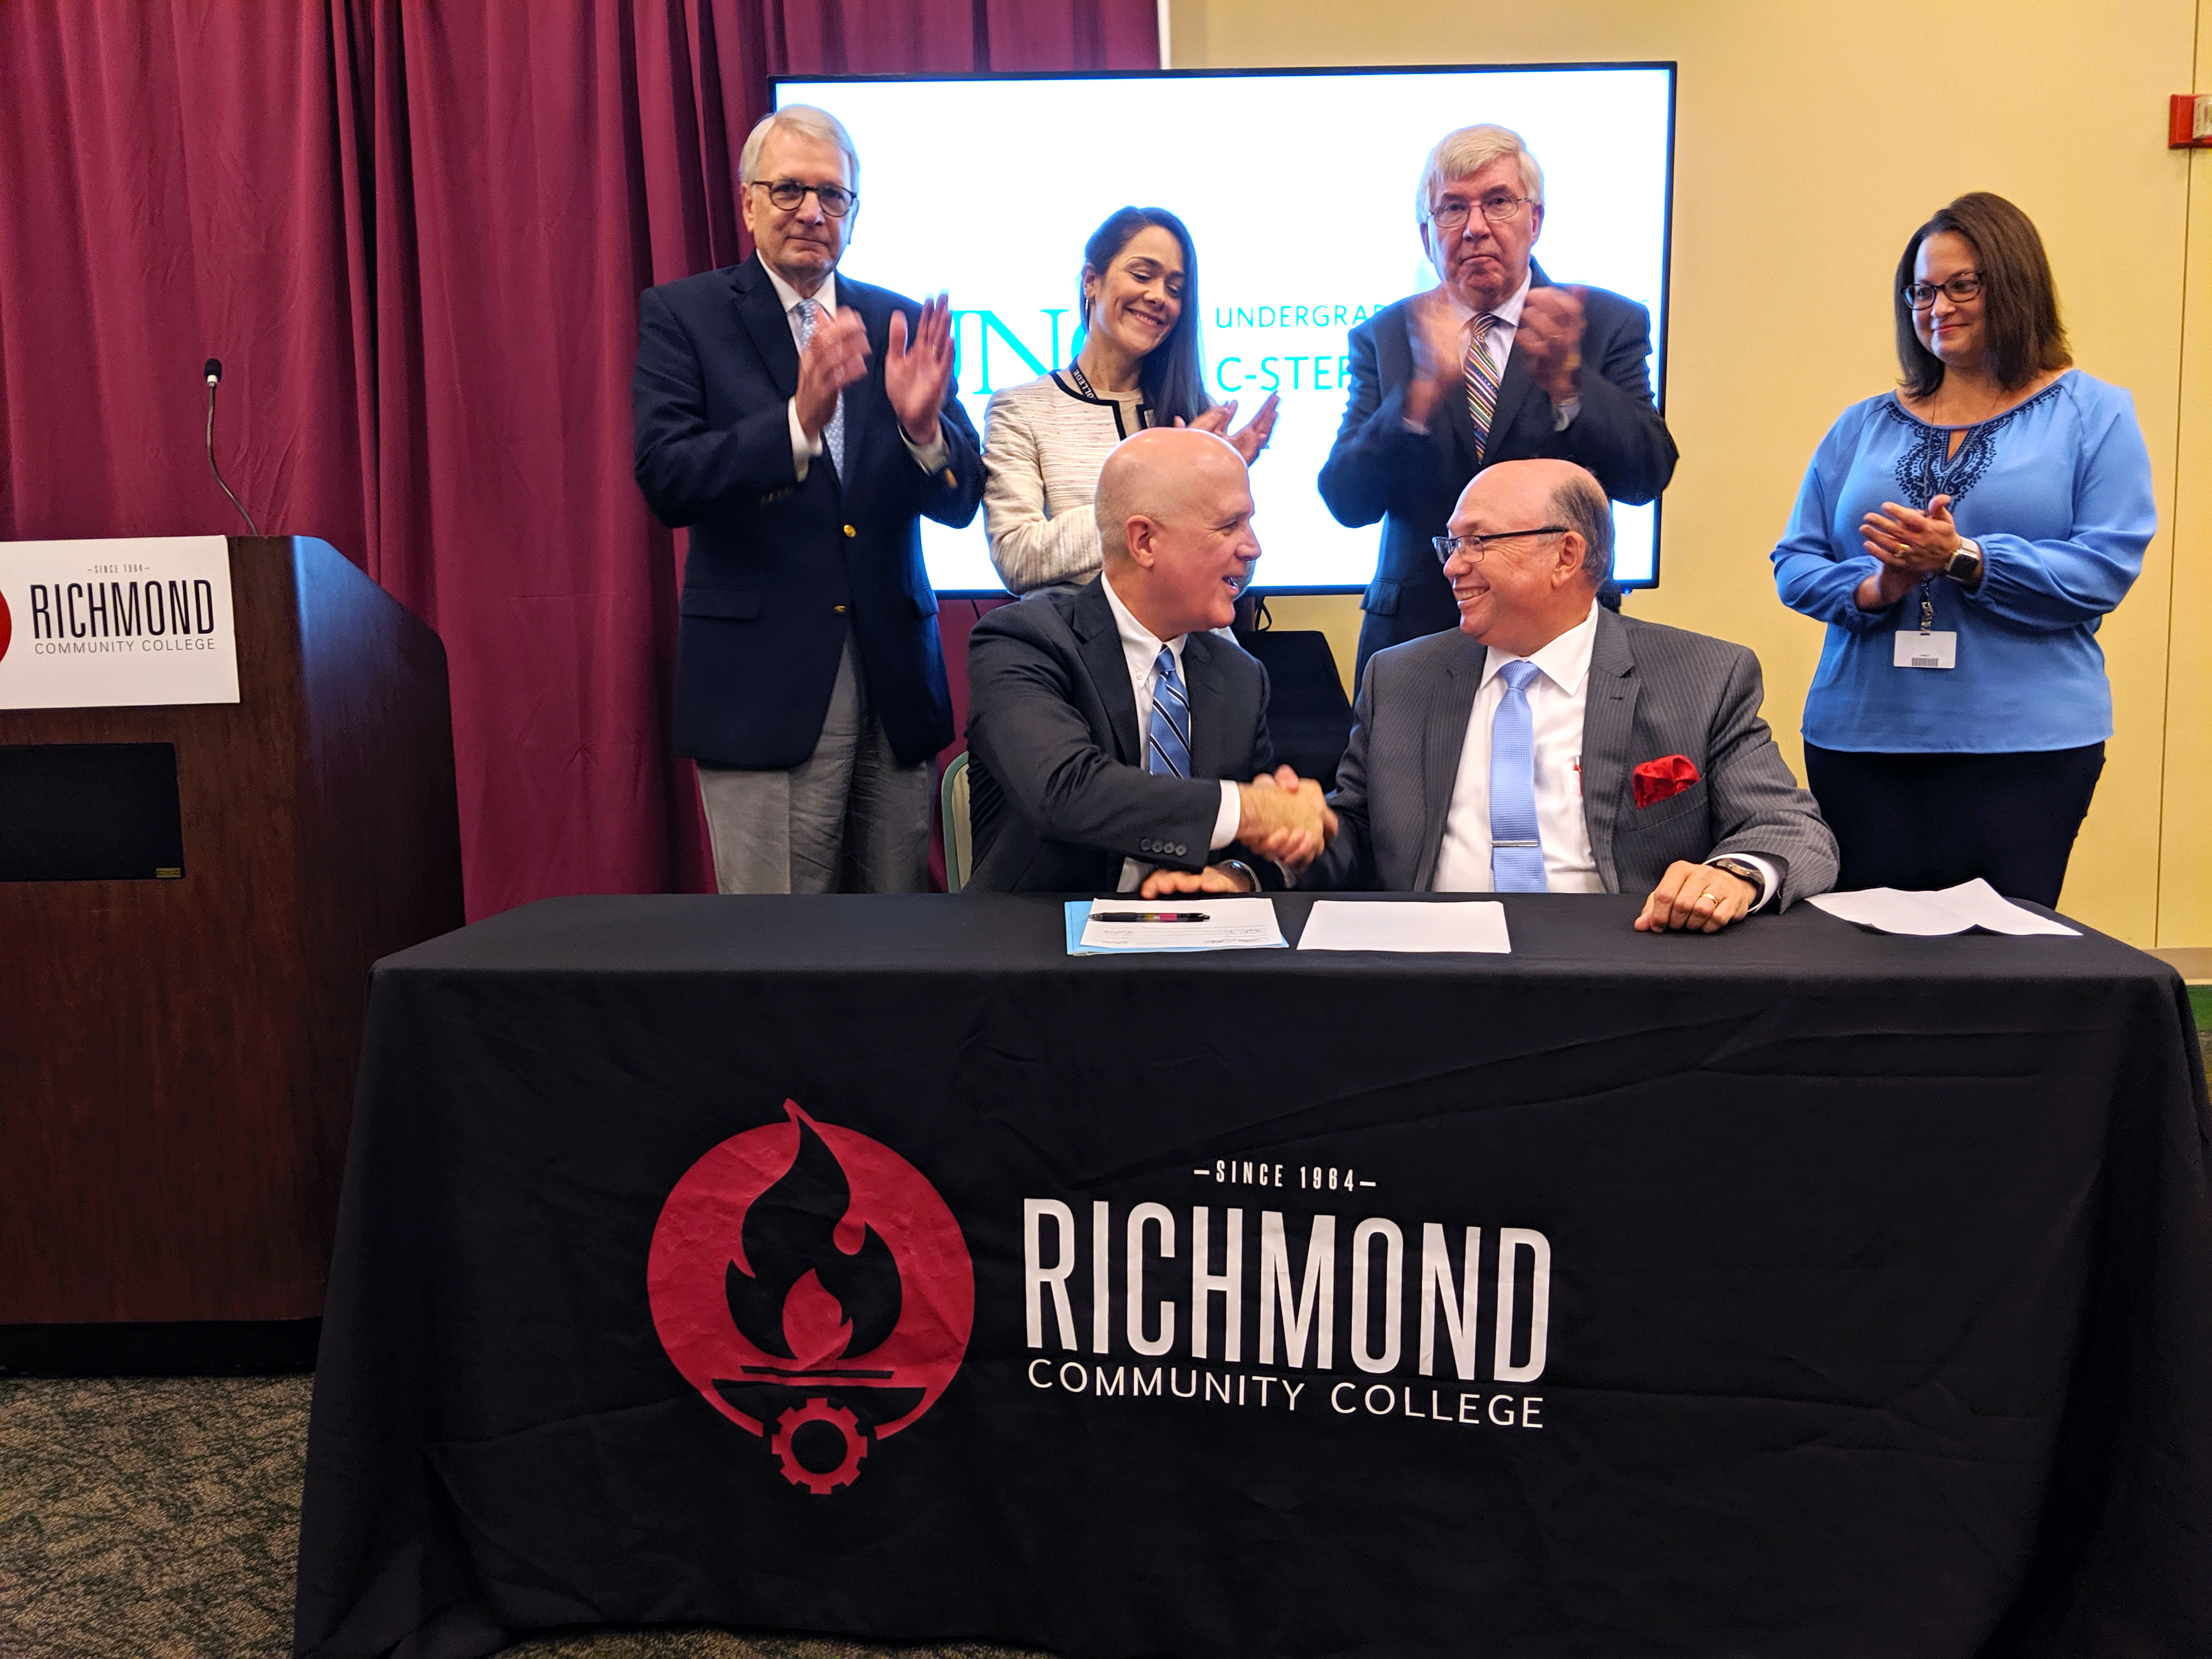 RichmondCC and UNC leaders sit at a table and sign a document while others look on.